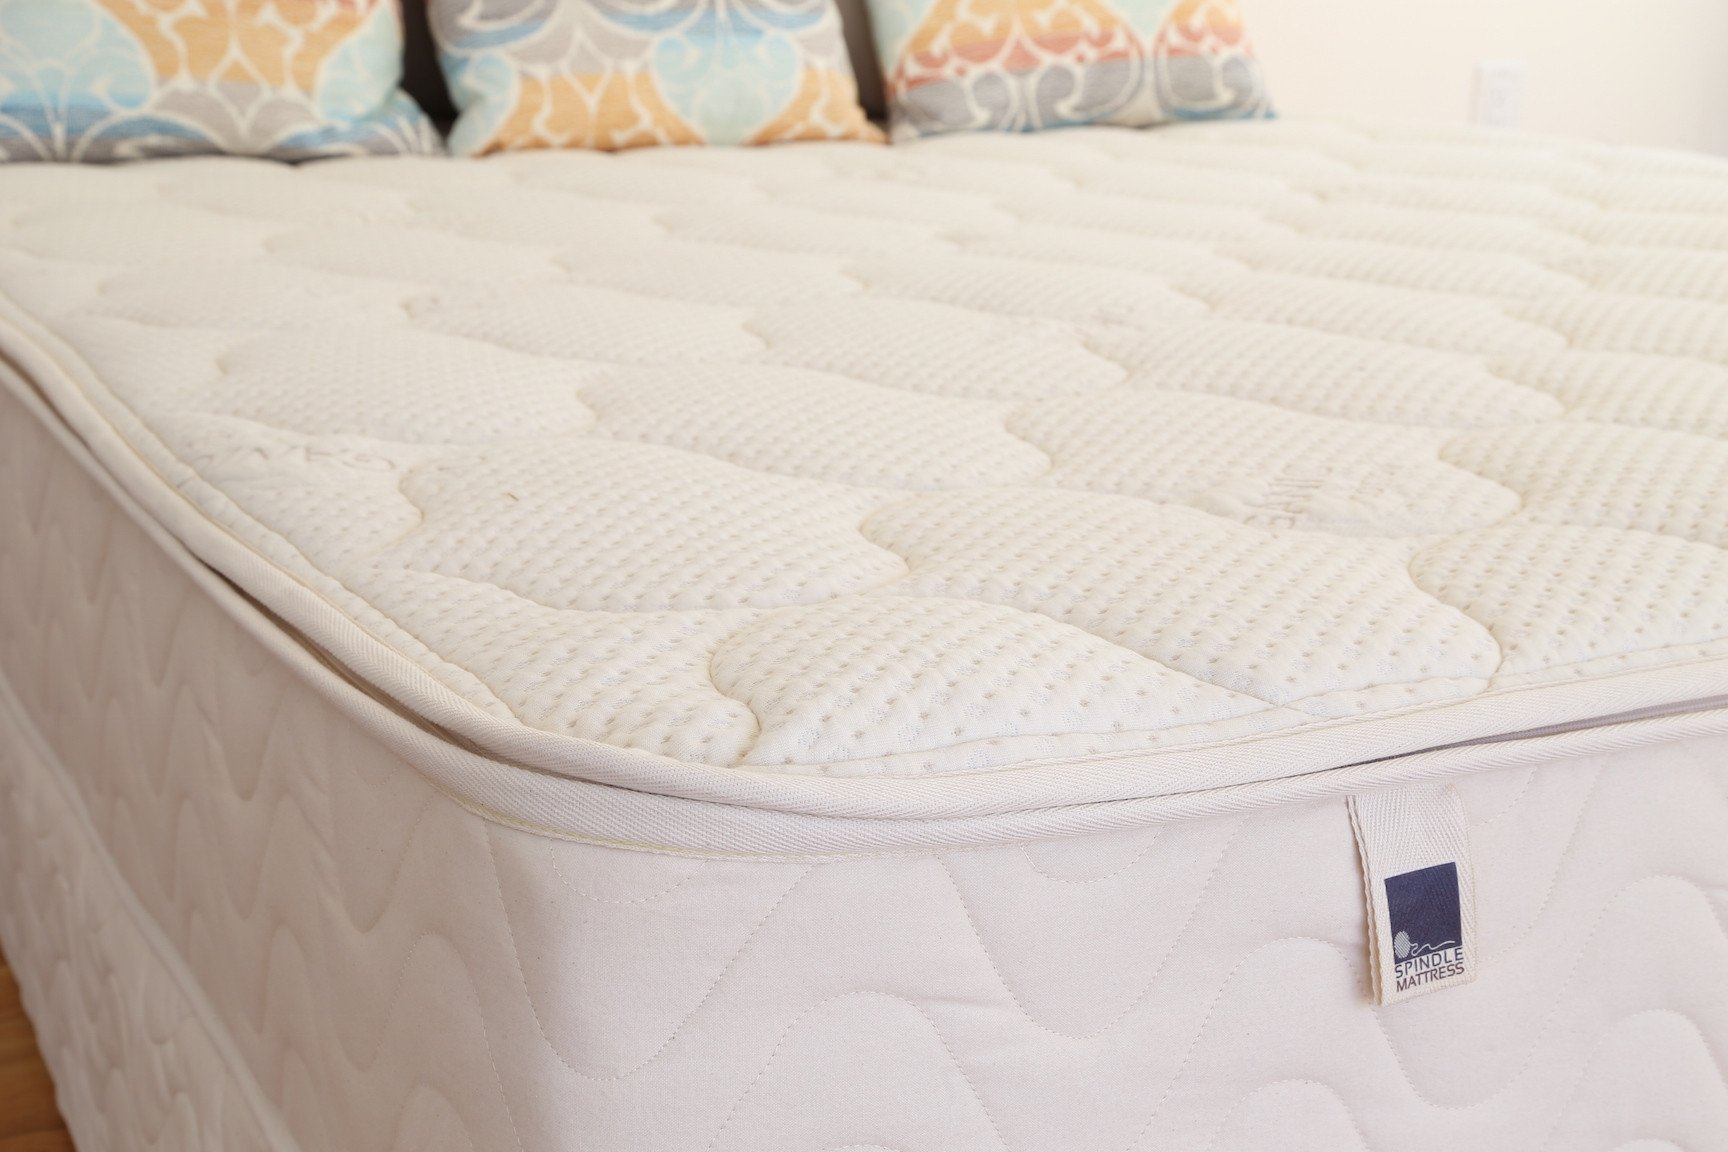 The Spindle latex core (all-latex) mattress comes with a zippered cover so that you can access and switch around the latex layers to get different firmnesses.